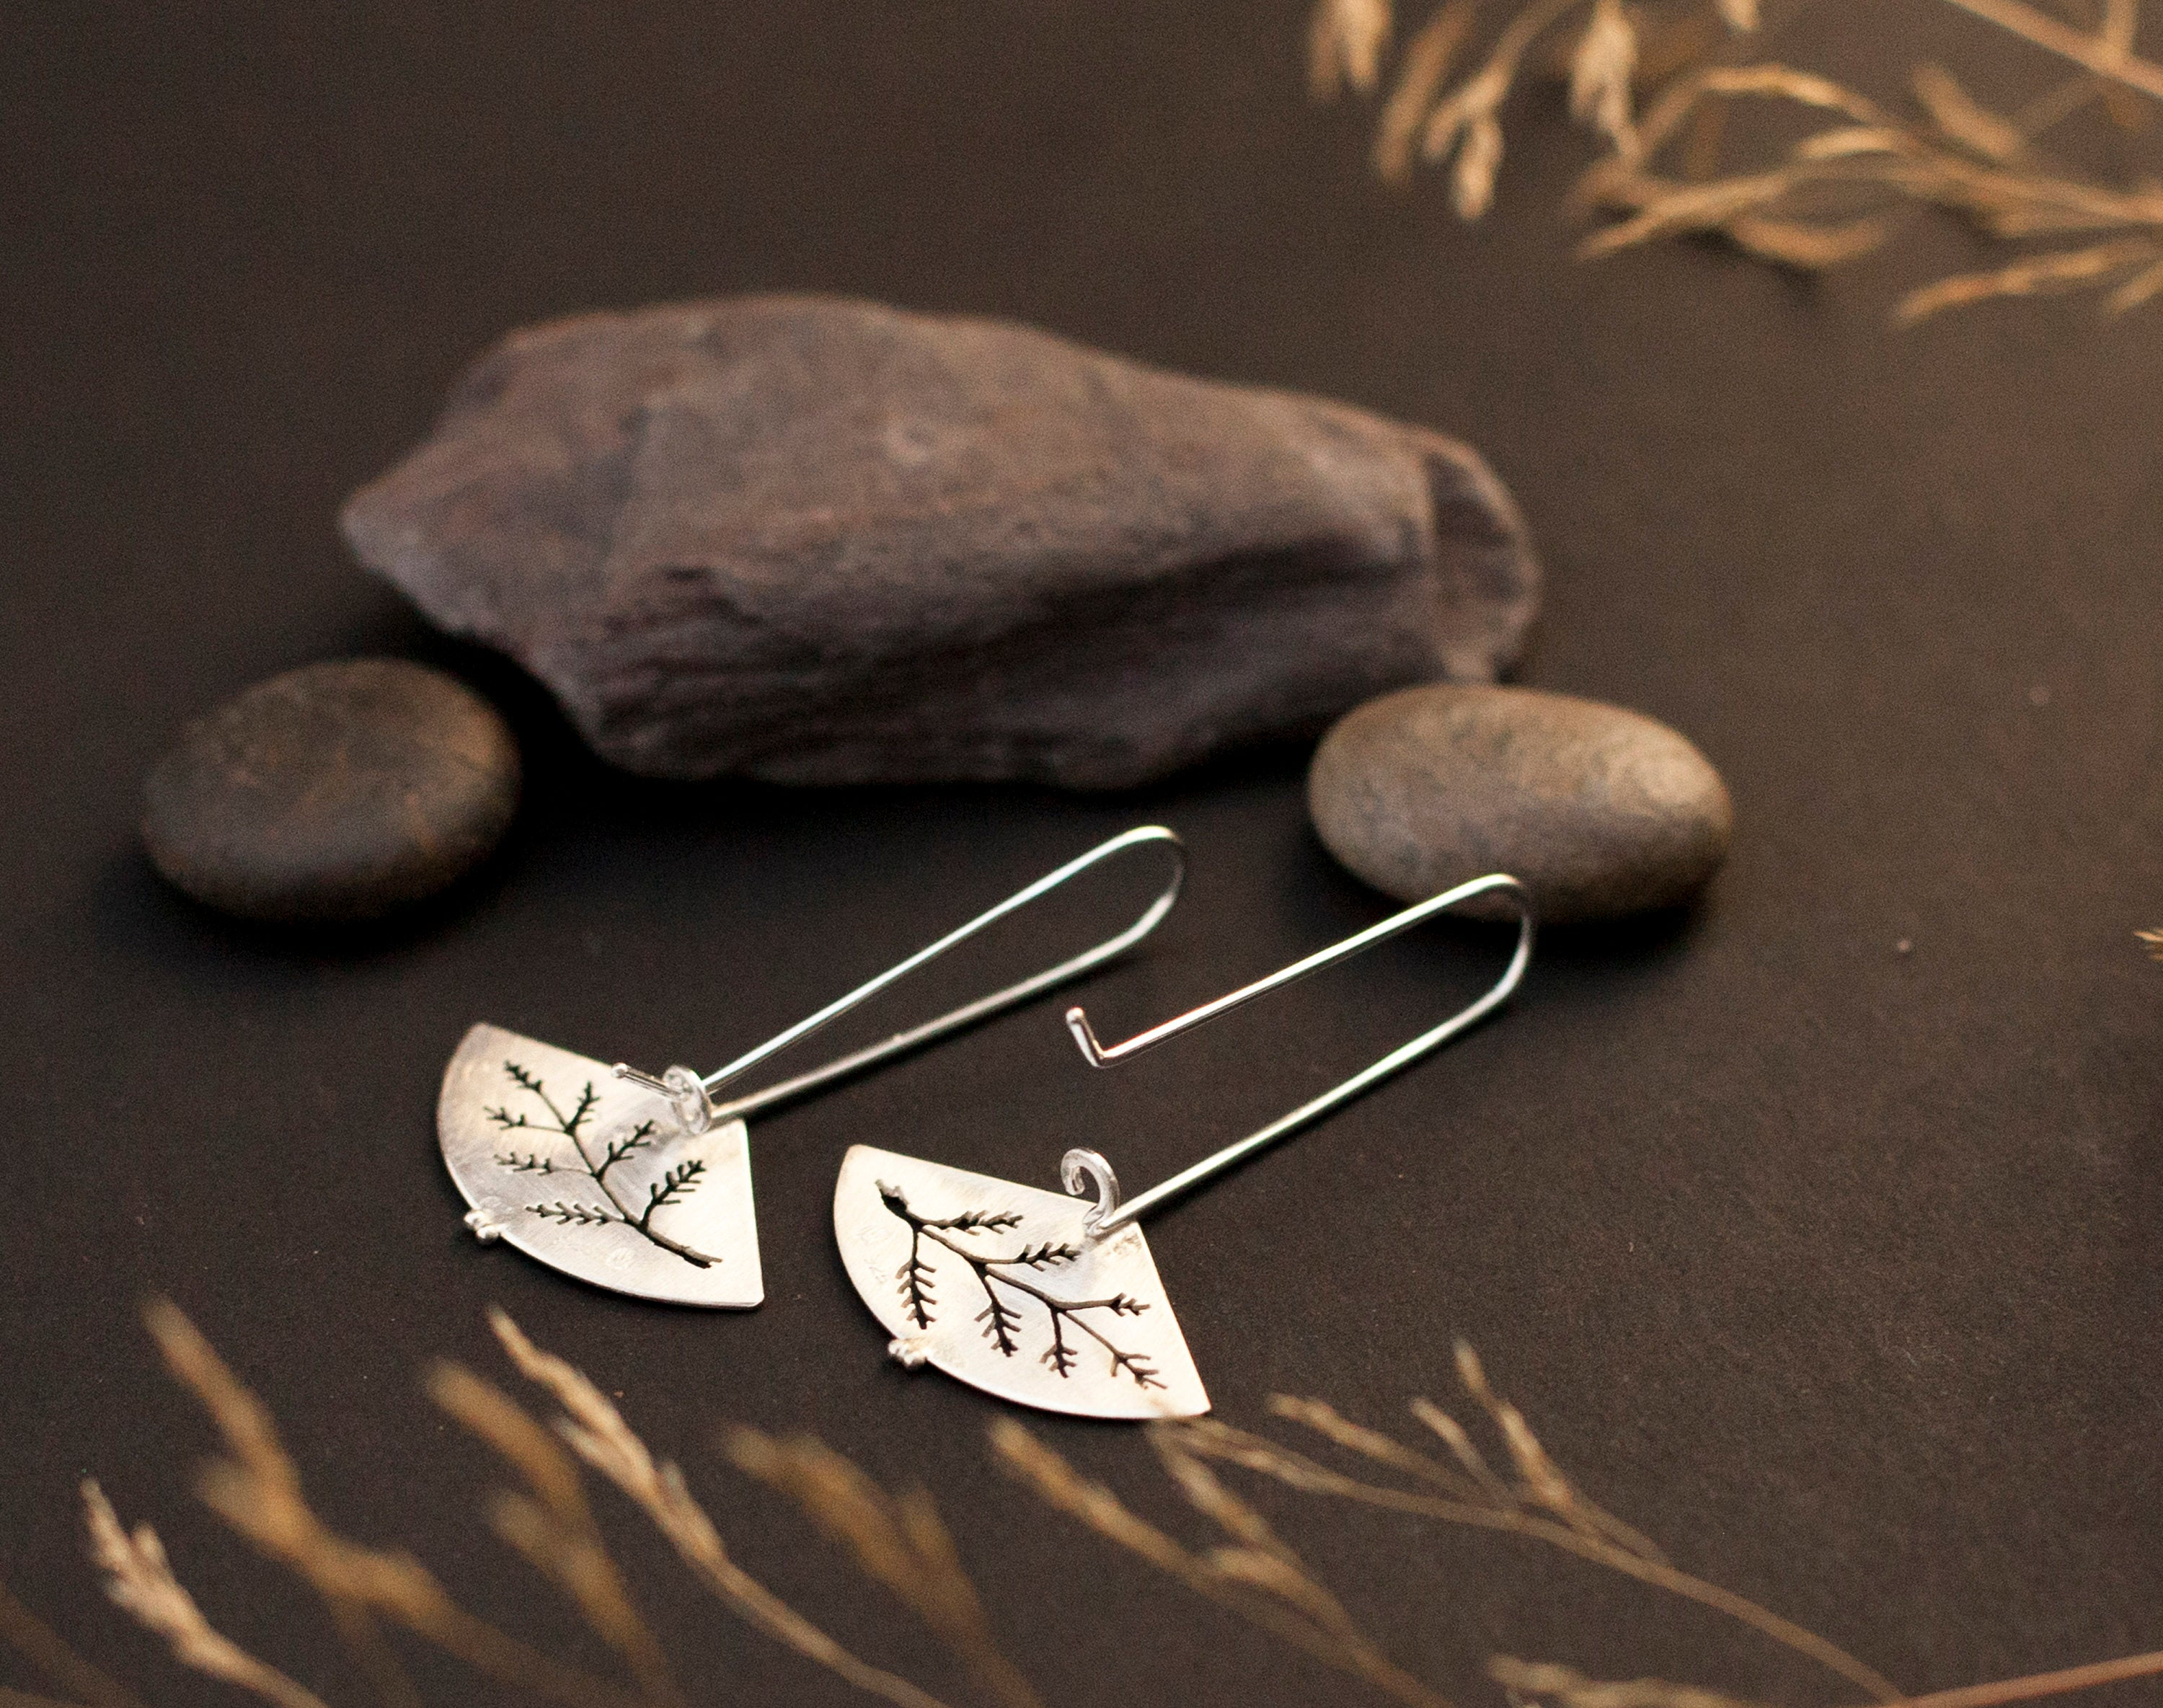 Dangling silver earrings in silver with fern out cut